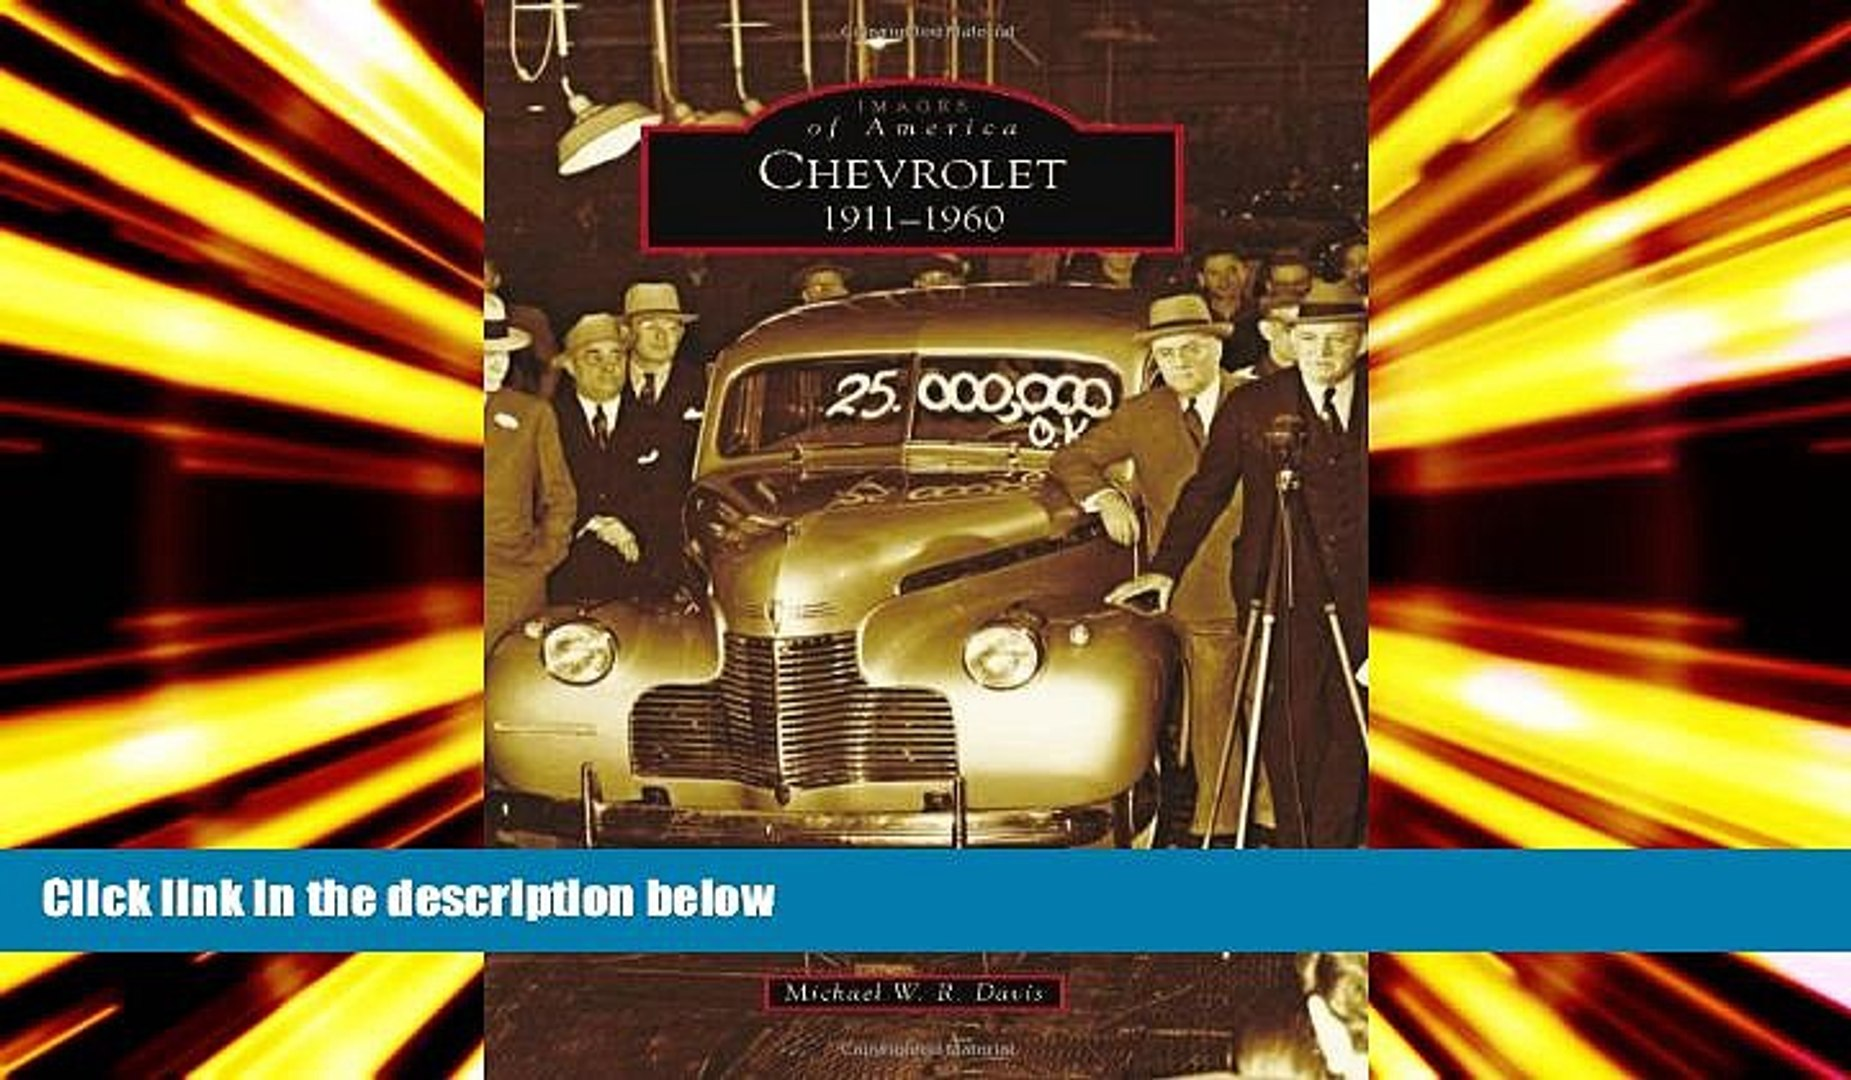 Audiobook  Chevrolet: 1911-1960 (Images of America) Michael W.R. Davis Pre Order